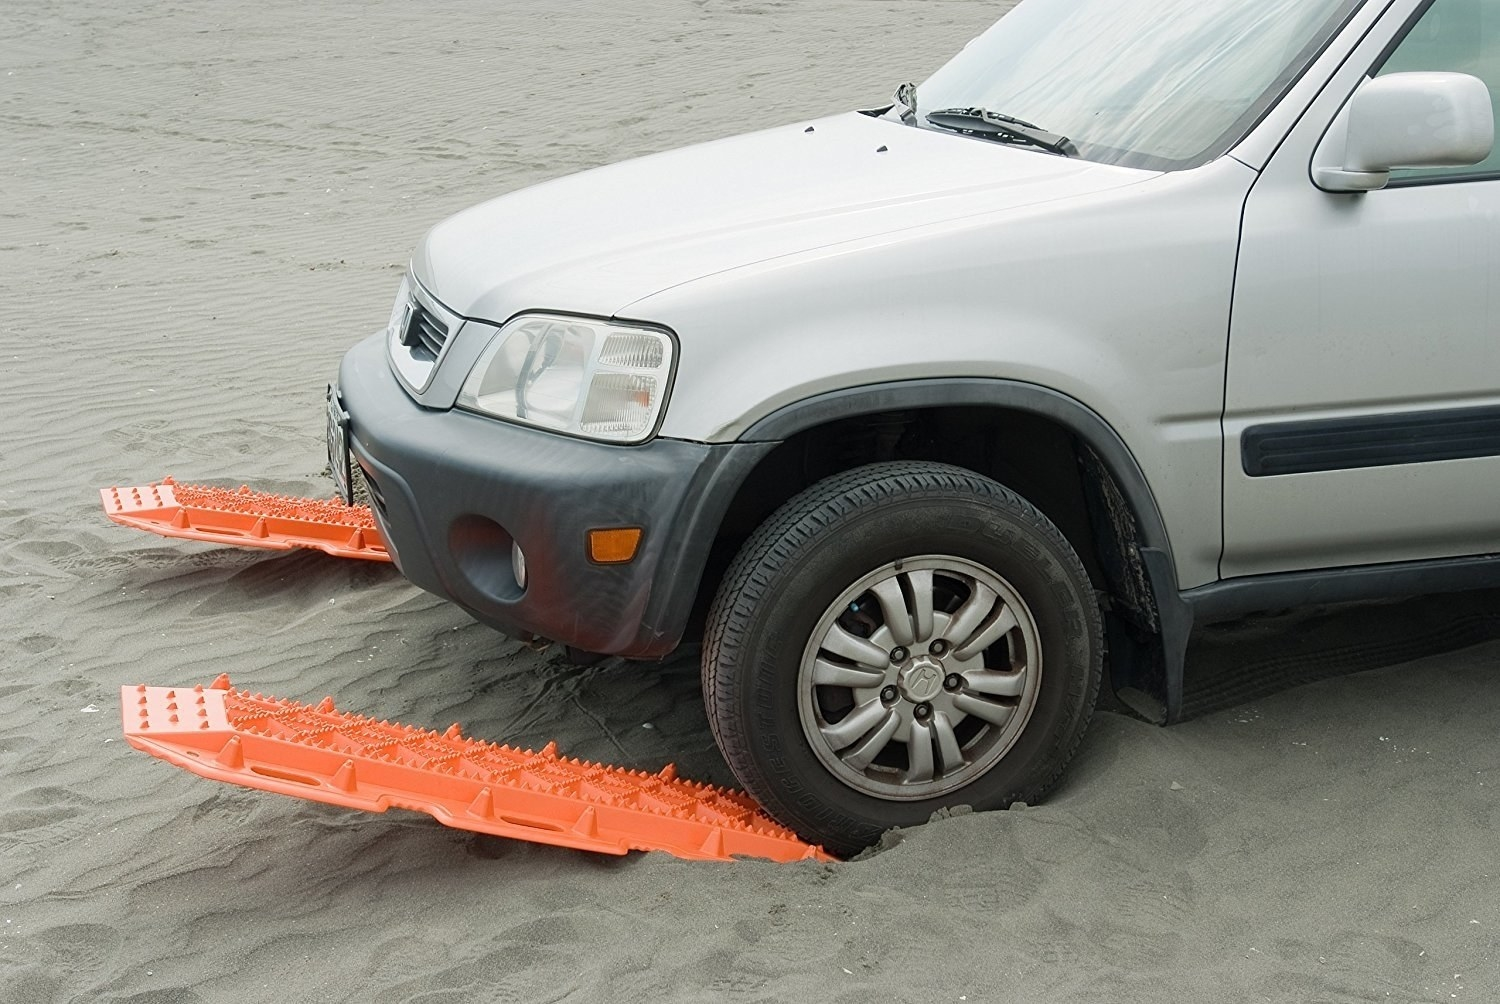 A car using the two bright orange escape trap to get out of being stuck in the sand